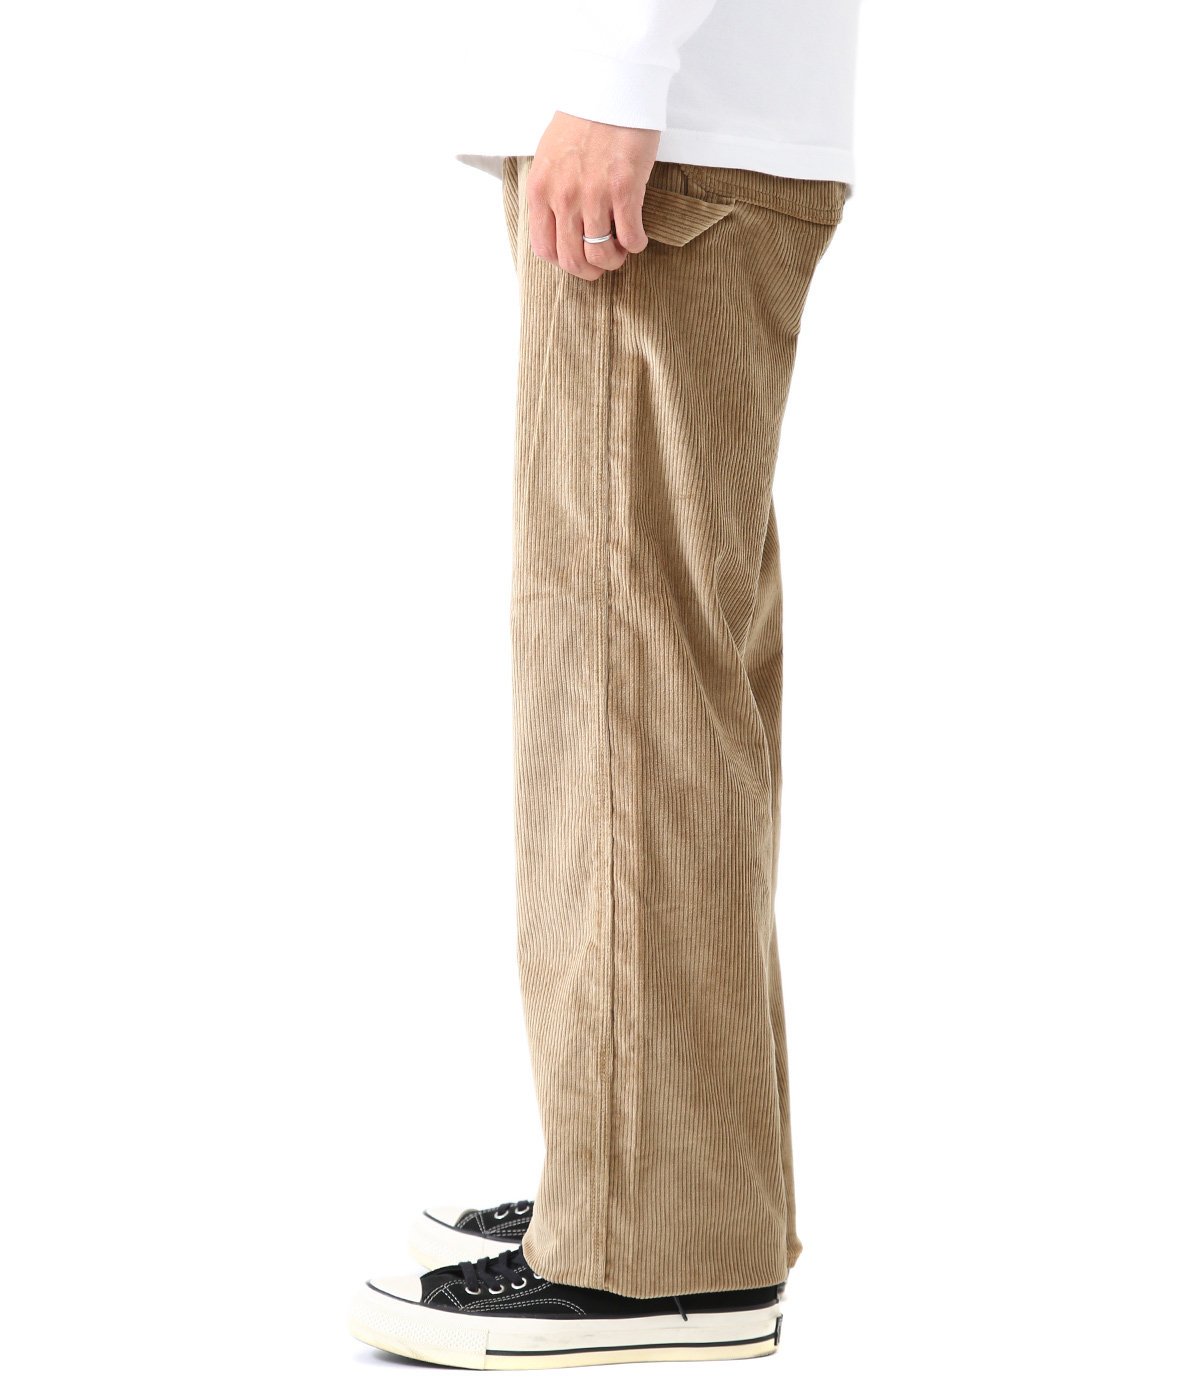 THICK CORDUROY PAINTER PANTS